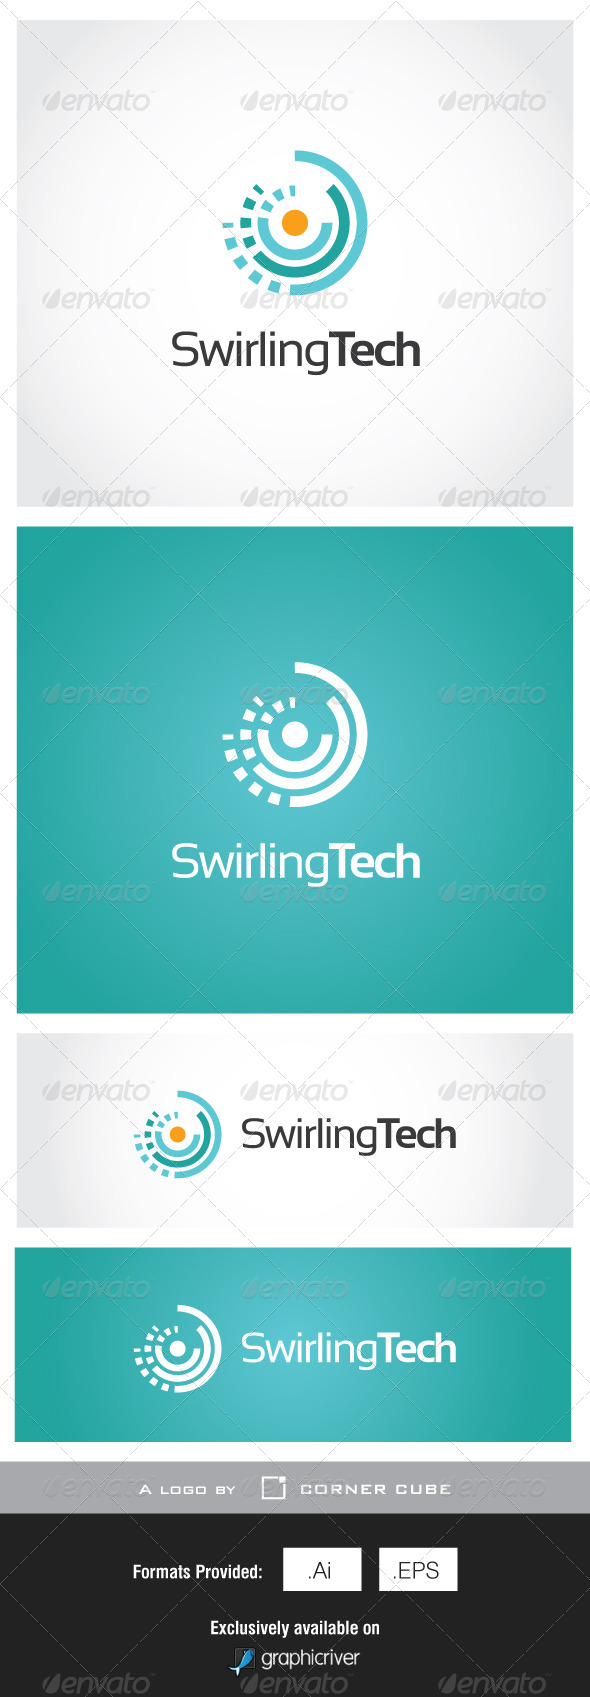 Swirling Tech Logo - Logo Templates